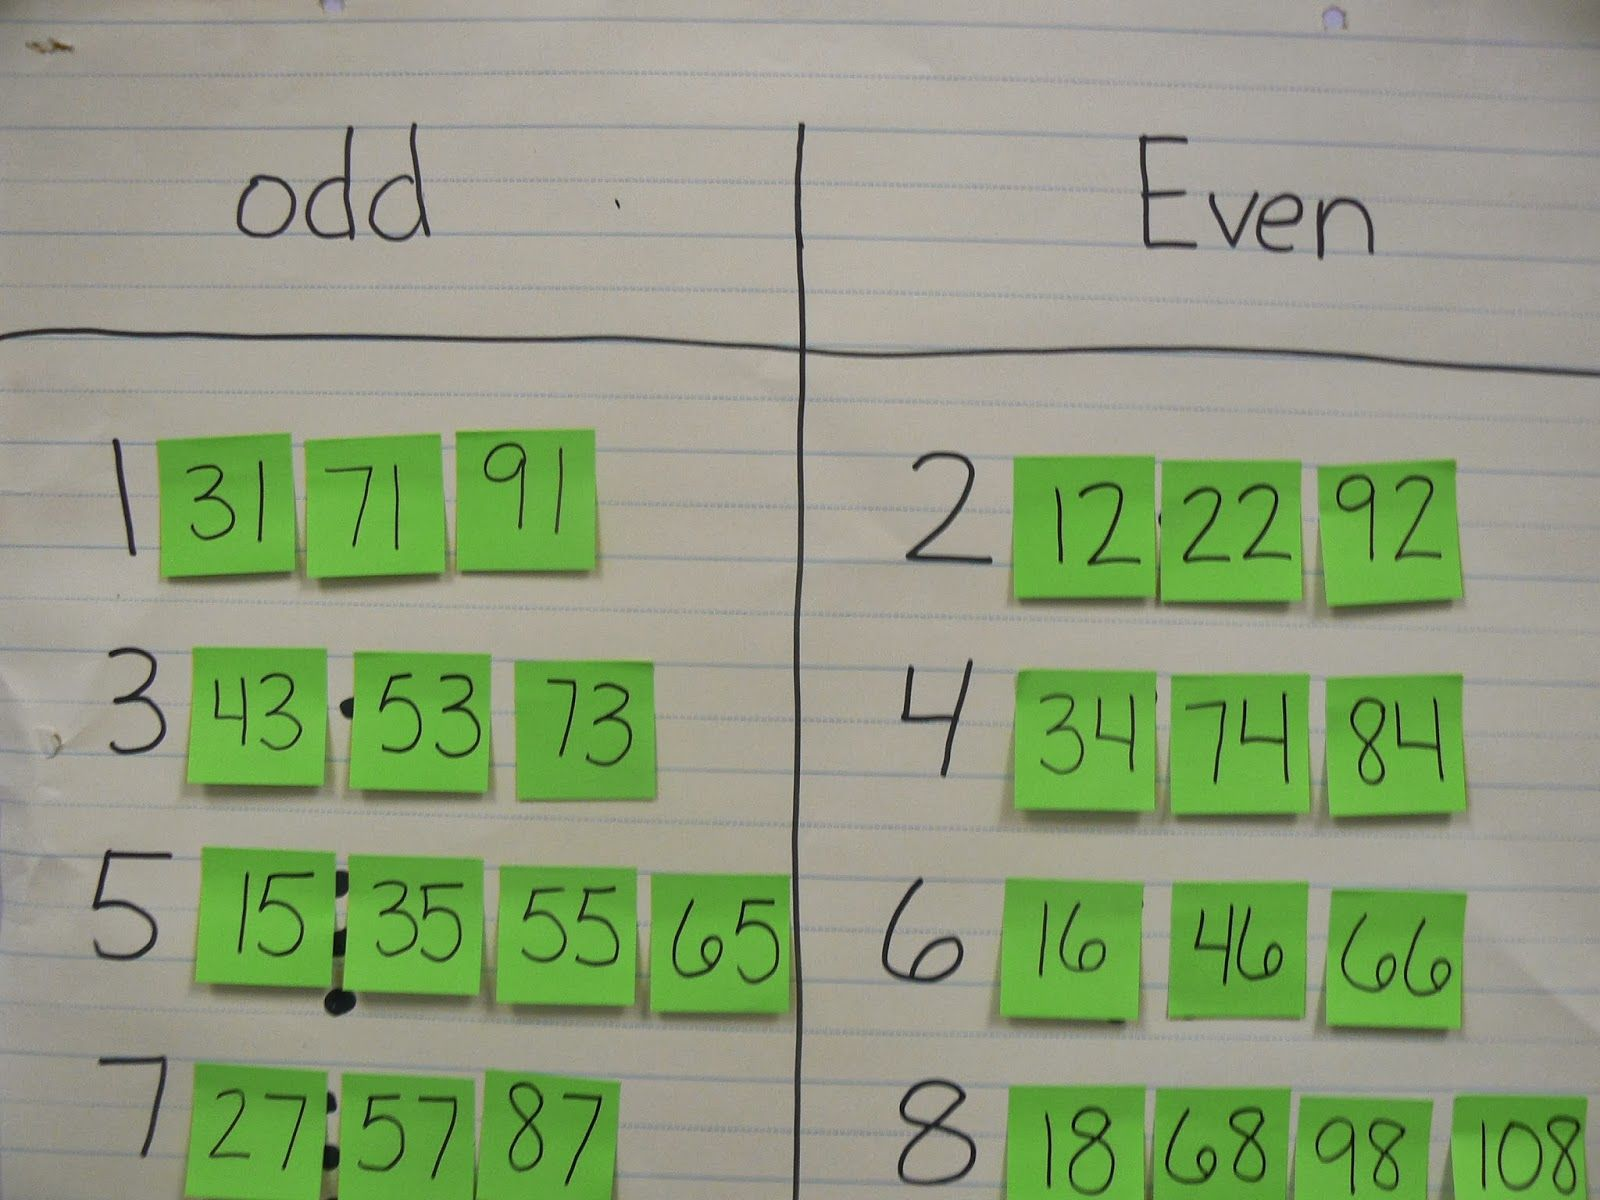 Odd And Even Post It Notes To See Connection To Bigger Numbers That Follow  The Pattern